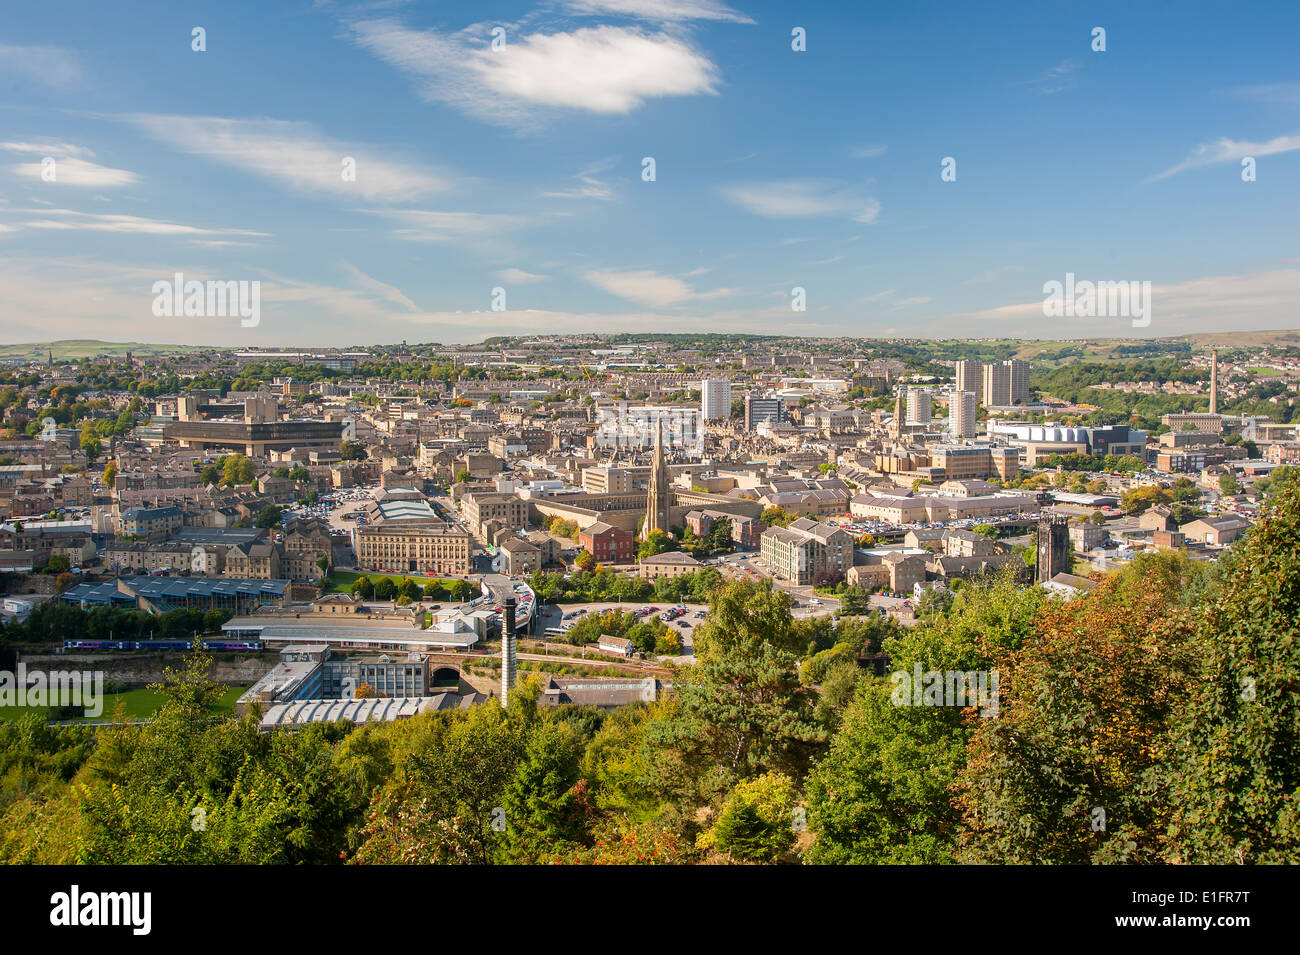 The Northern England town of Halifax in West Yorkshire - Stock Image